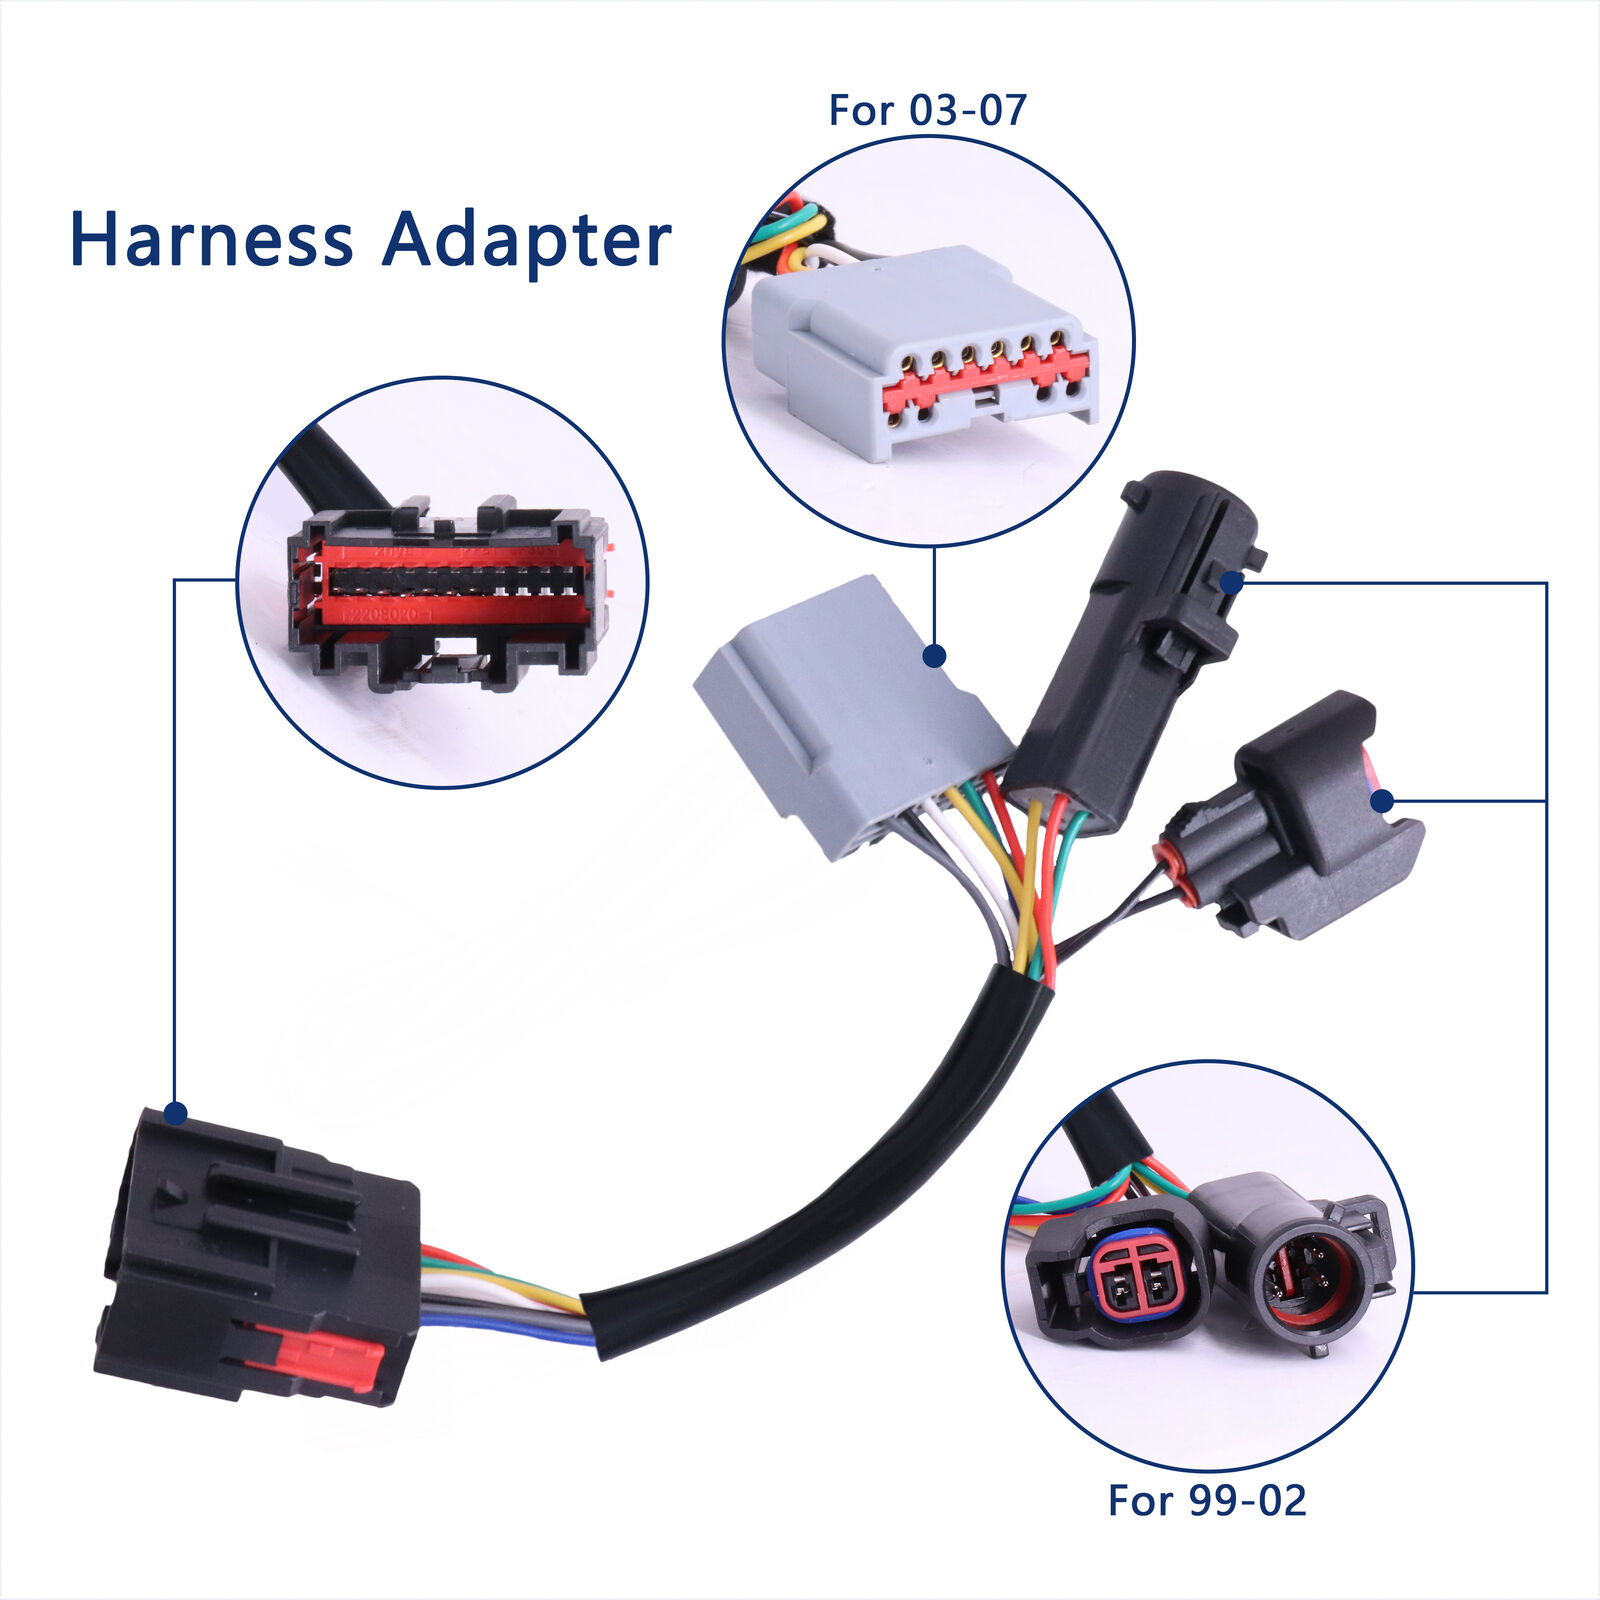 2x Wiring Harness AdapterTow Mirrors Adapter For Ford F250-F550 SuperDuty 99-07    eBay   99 Ford Super Duty Wiring Harness      eBay